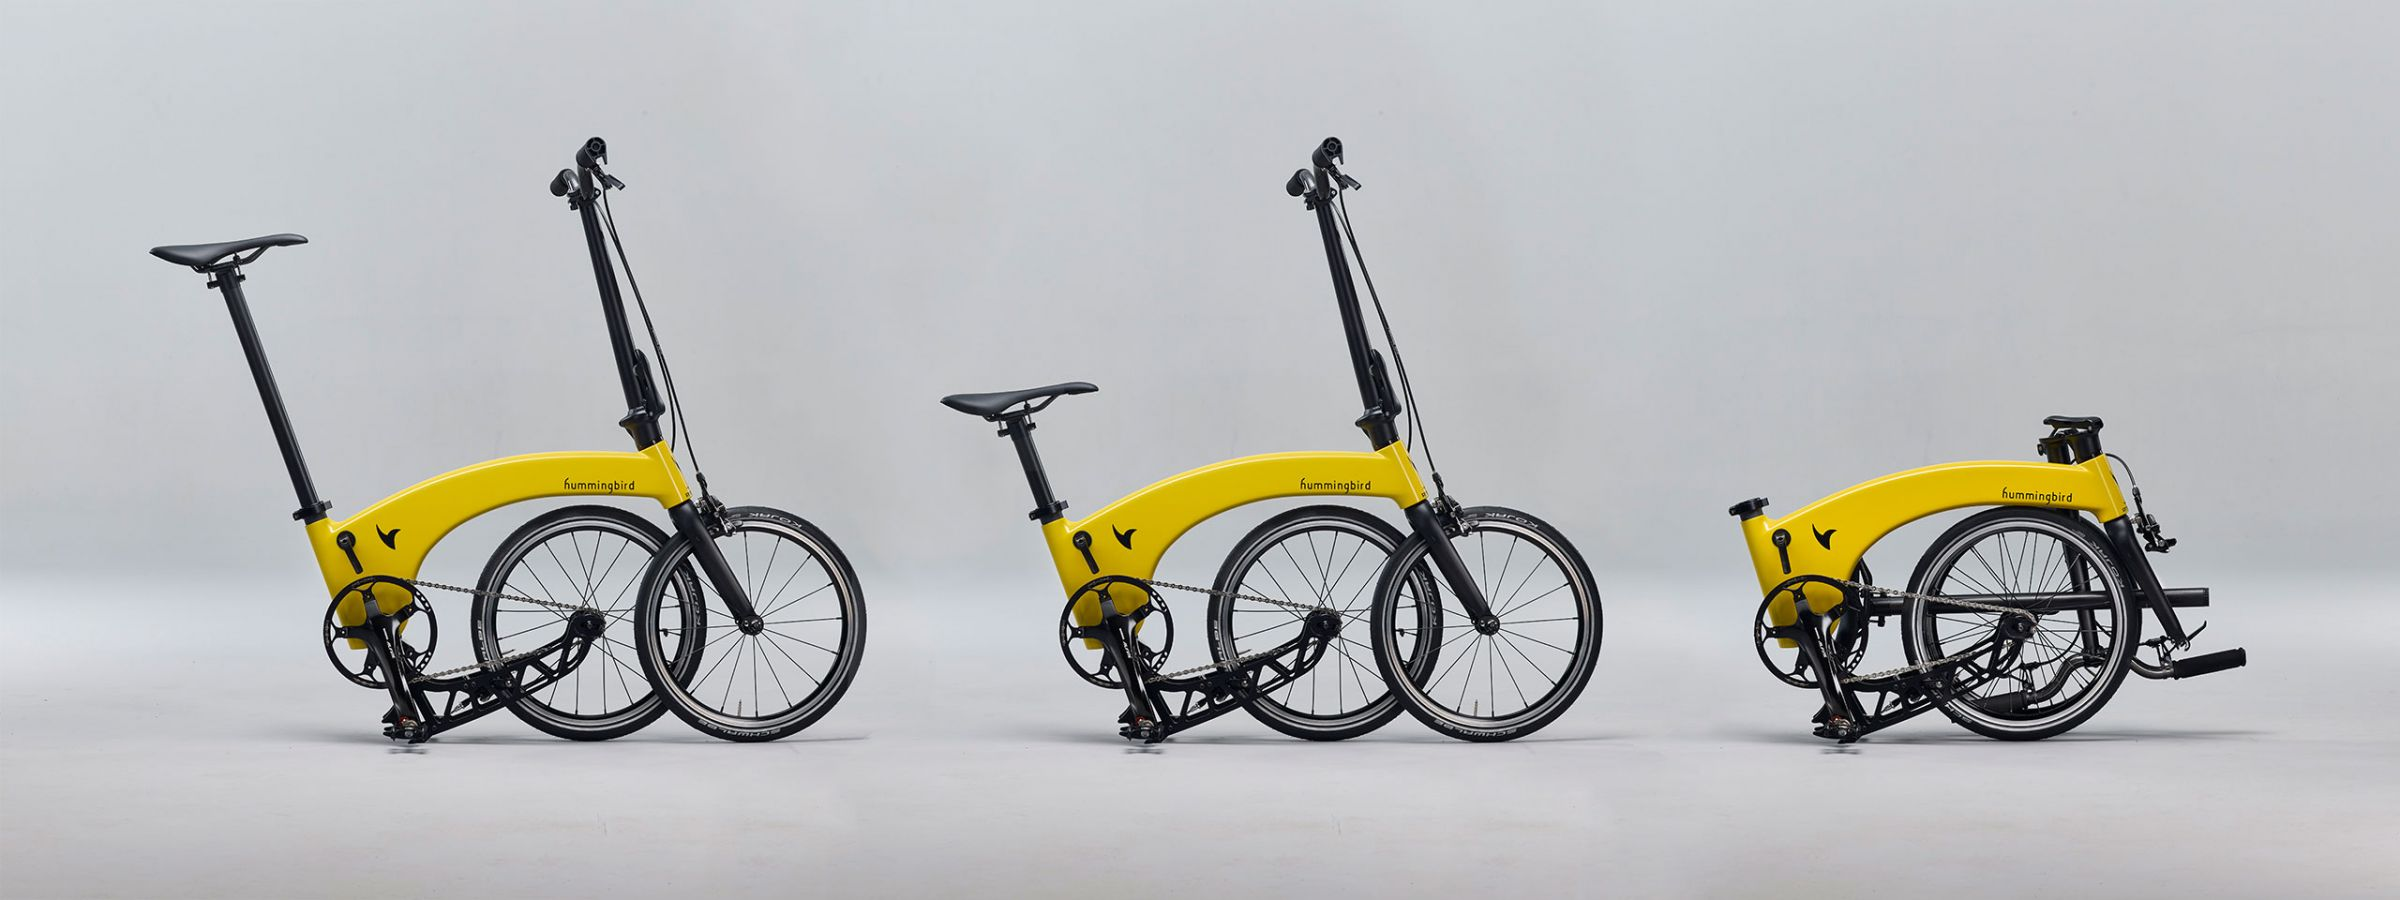 A Lighter Way of Breathing New Life Into Urban Cycling 10